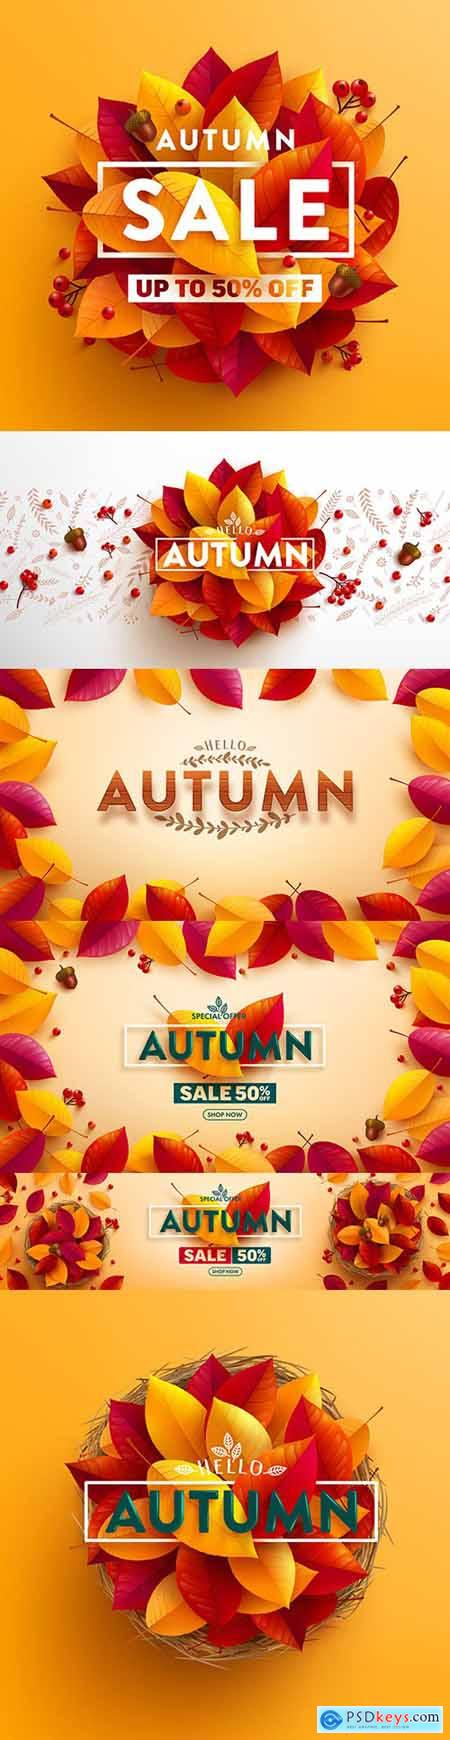 Autumn sale poster and banner with autumn multi-colored leaves